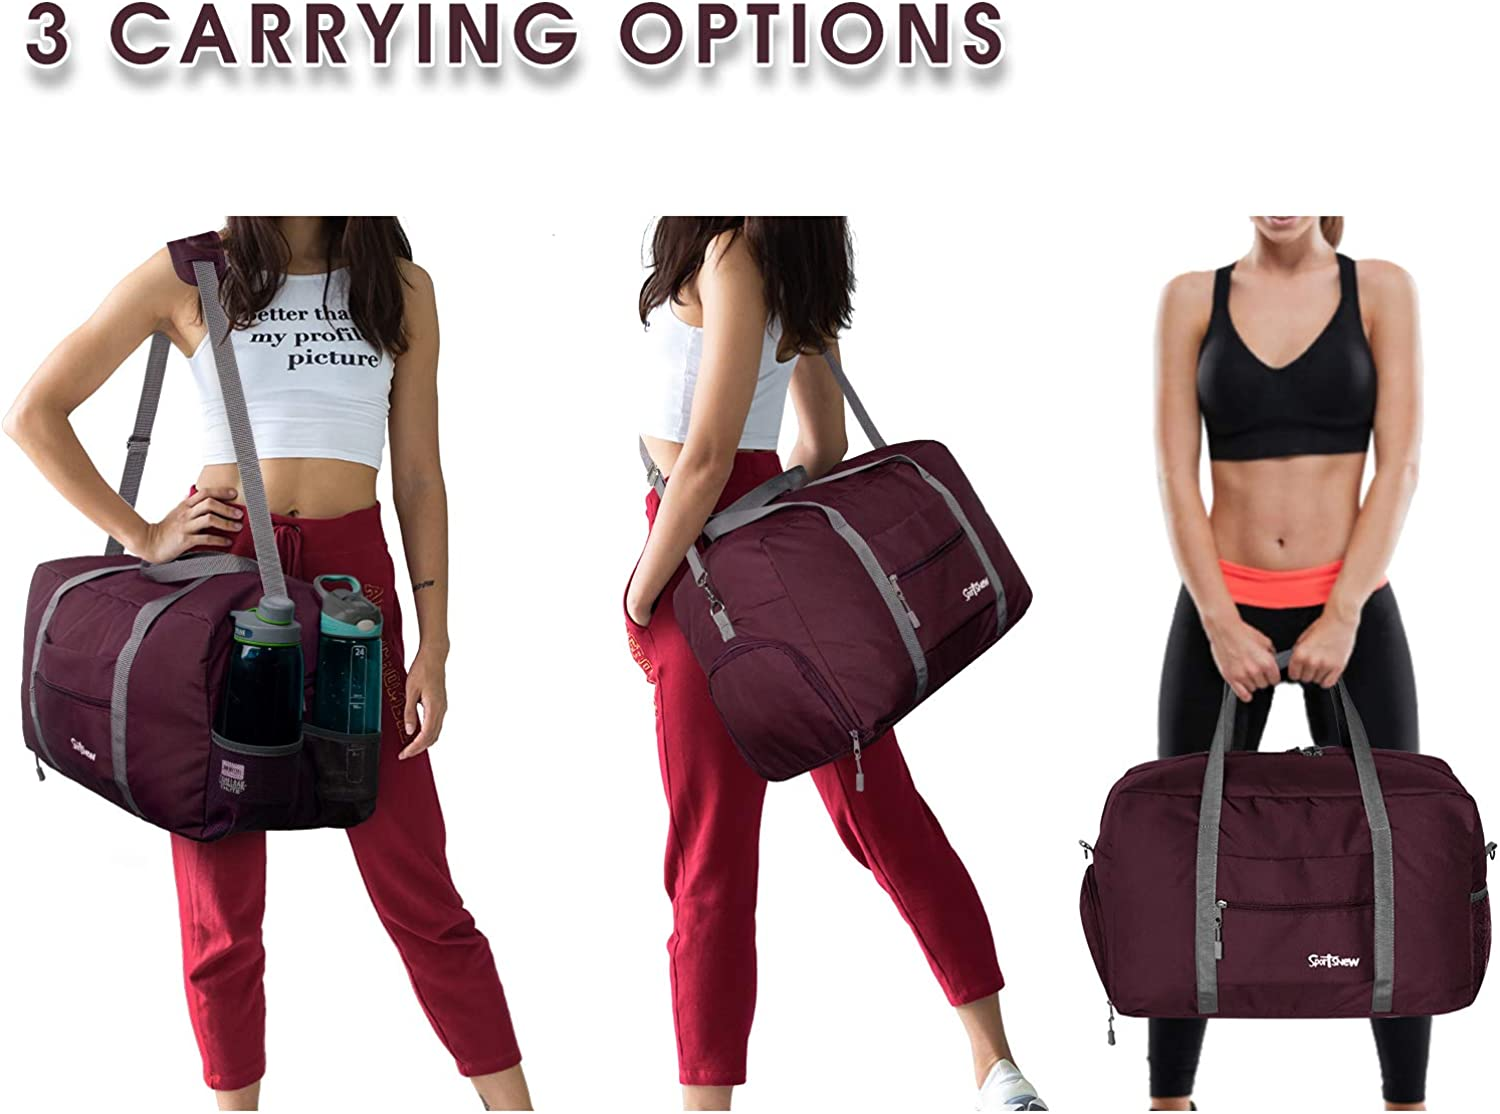 Travel Duffel Bag for Men and Women Lightweight 35L Sports Gym Bag with Wet Pocket /& Shoes Compartment